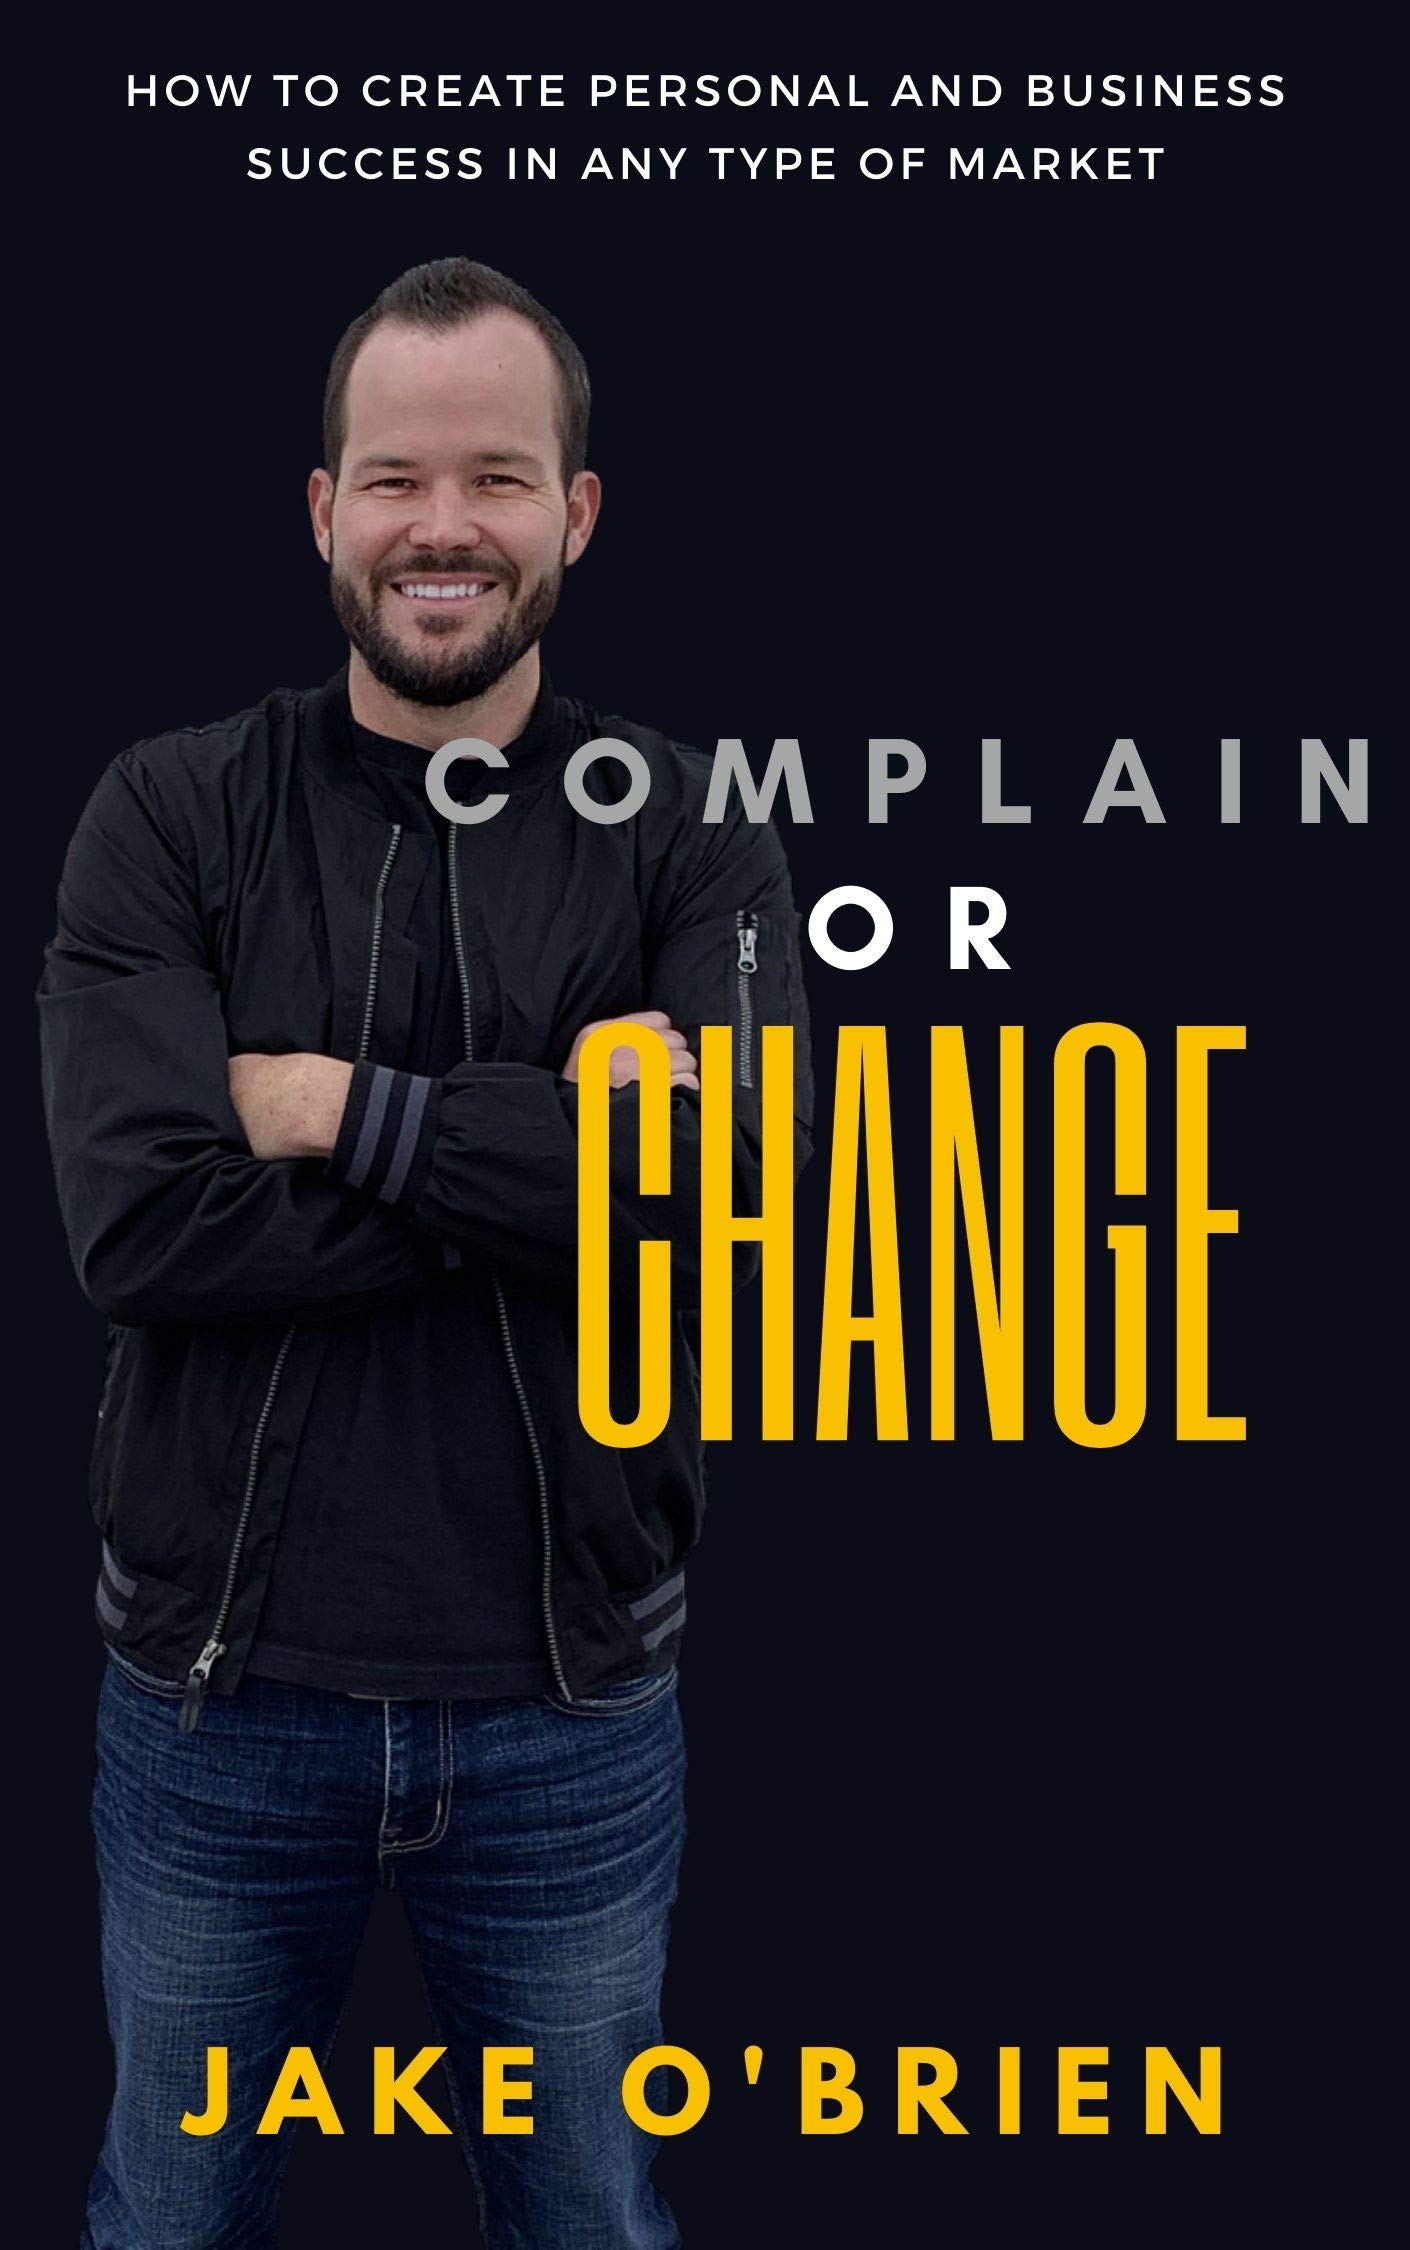 Complain or Change: How to create personal and business success in any market